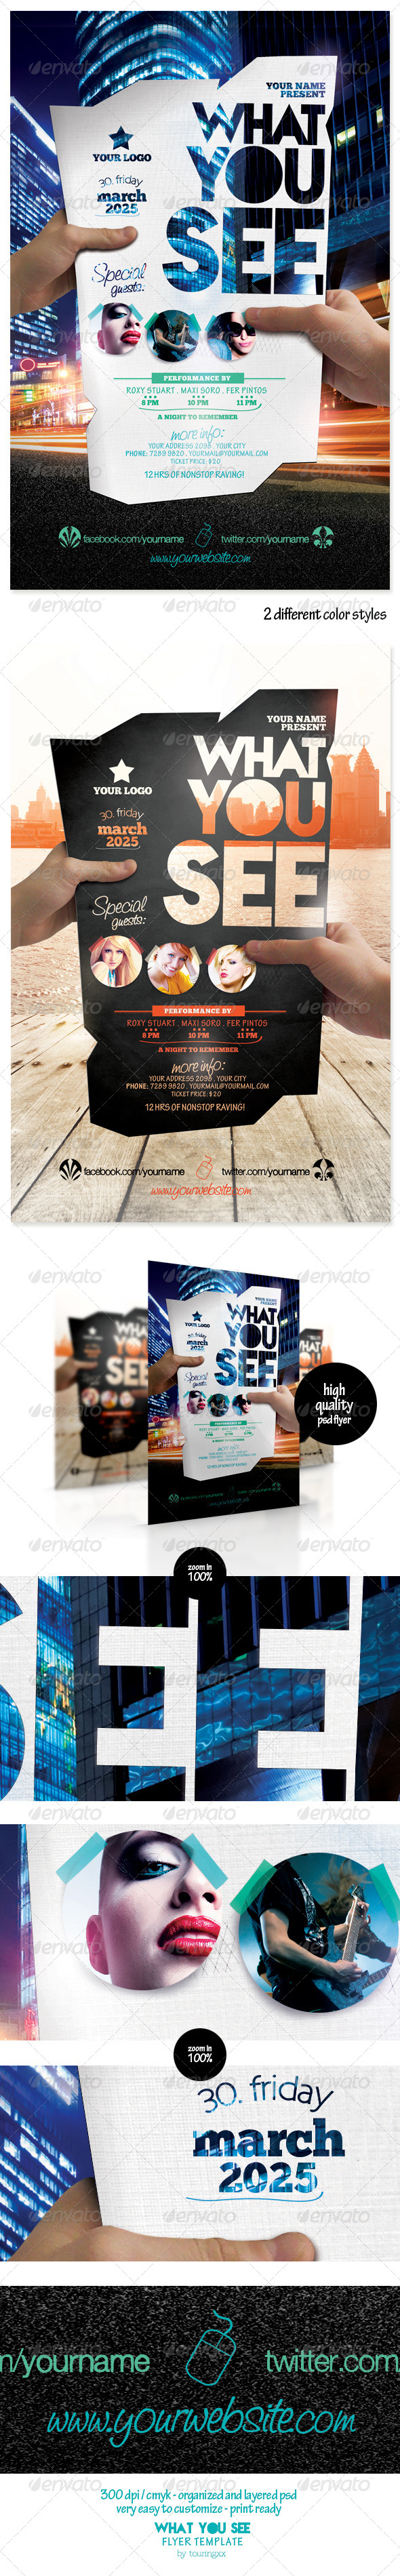 What You See Flyer Template - Flyers Print Templates